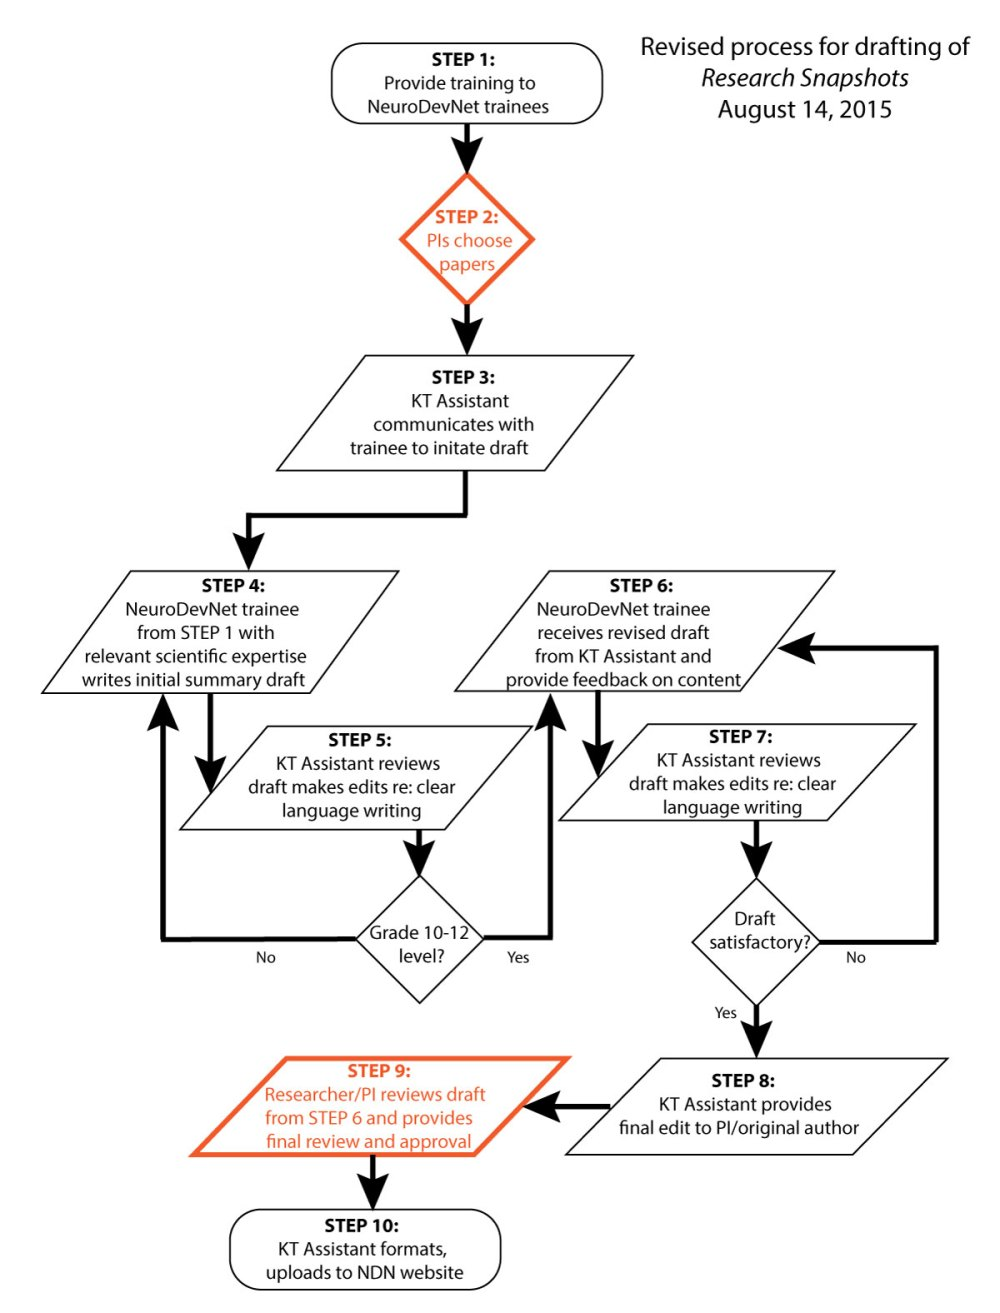 medium resolution of revised process flow chart for researchsnapshots